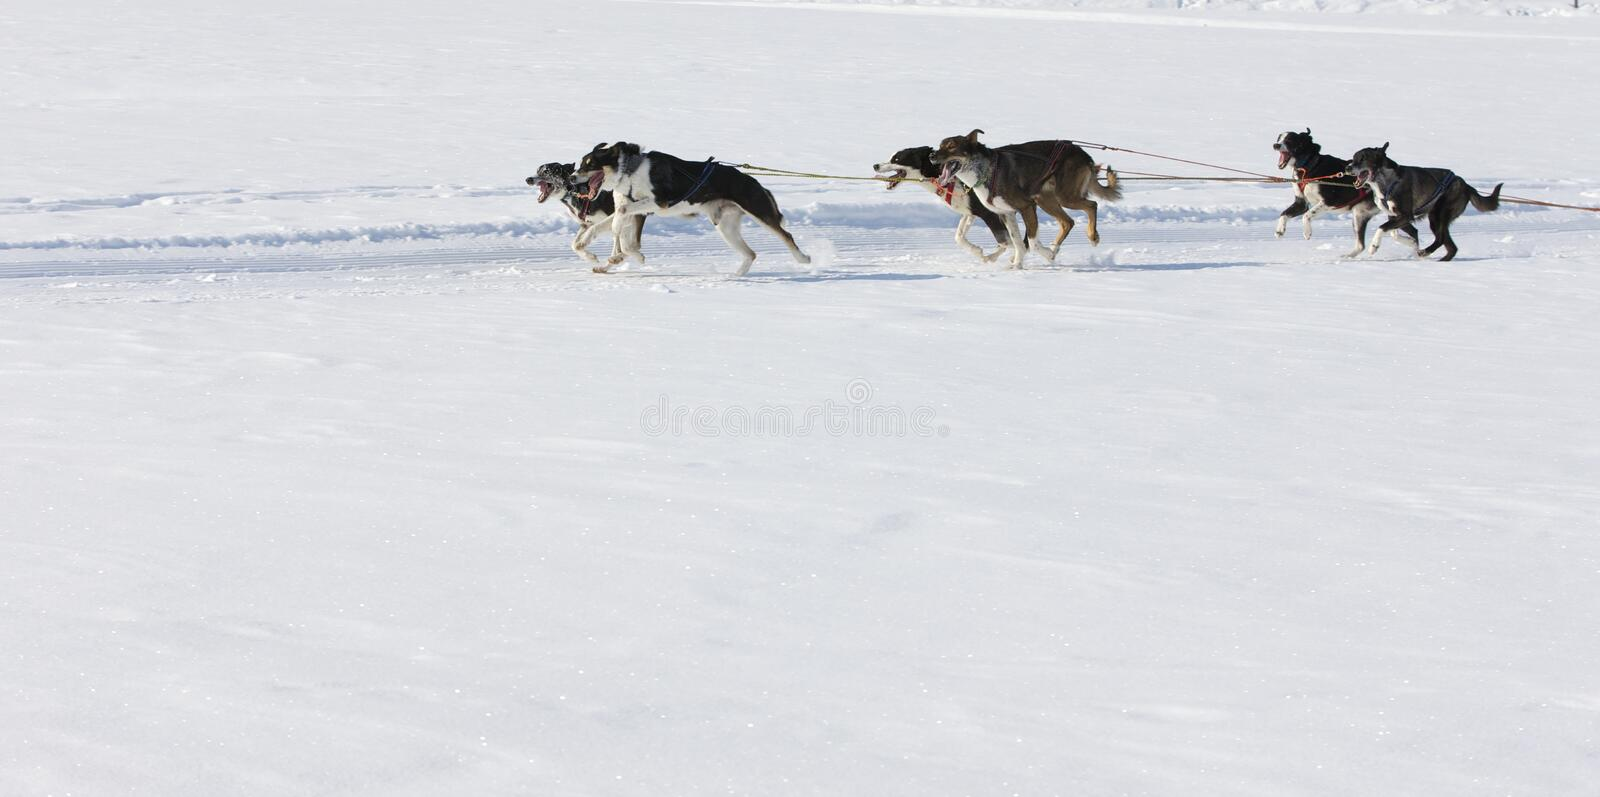 Download Sled Dog Race In Lenk / Switzerland 2012 Stock Photo - Image: 23404636